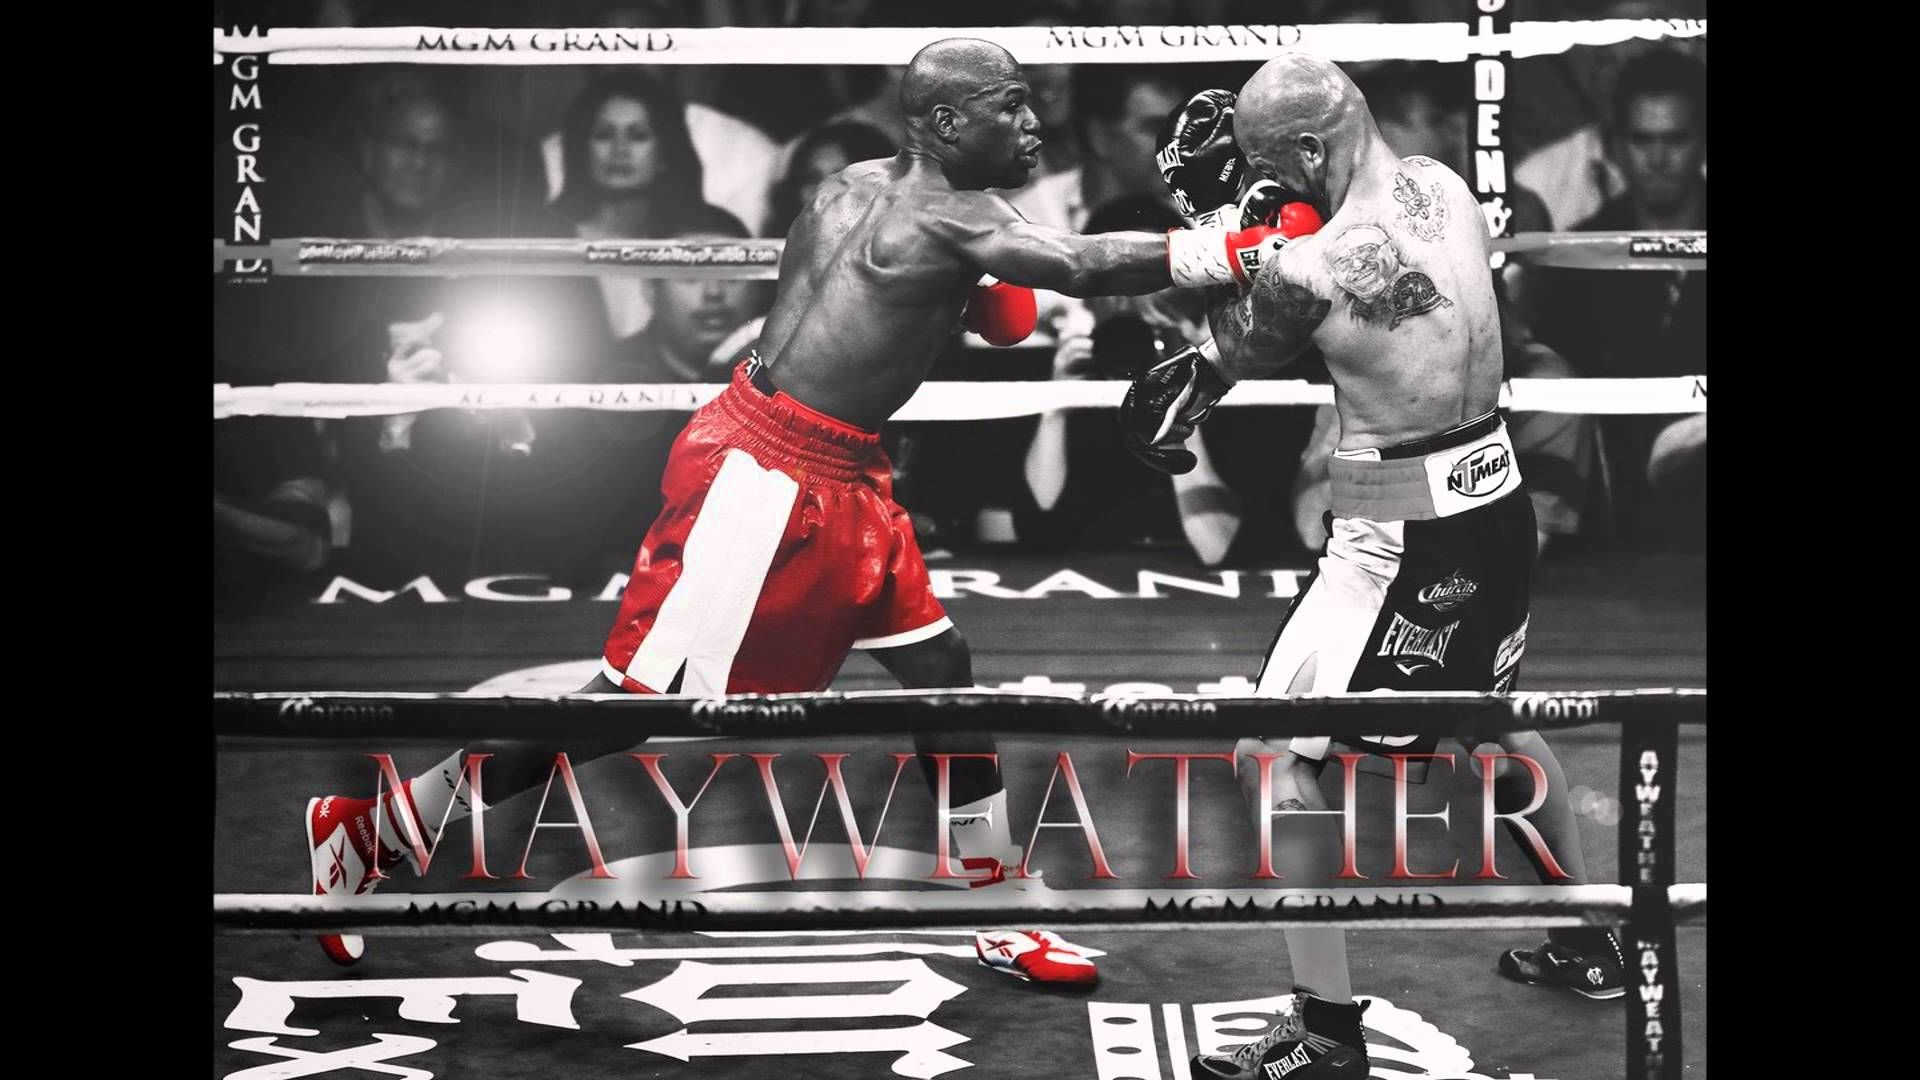 Floyd mayweather wallpapers wallpapers pinterest floyd floyd mayweather wallpapers altavistaventures Images